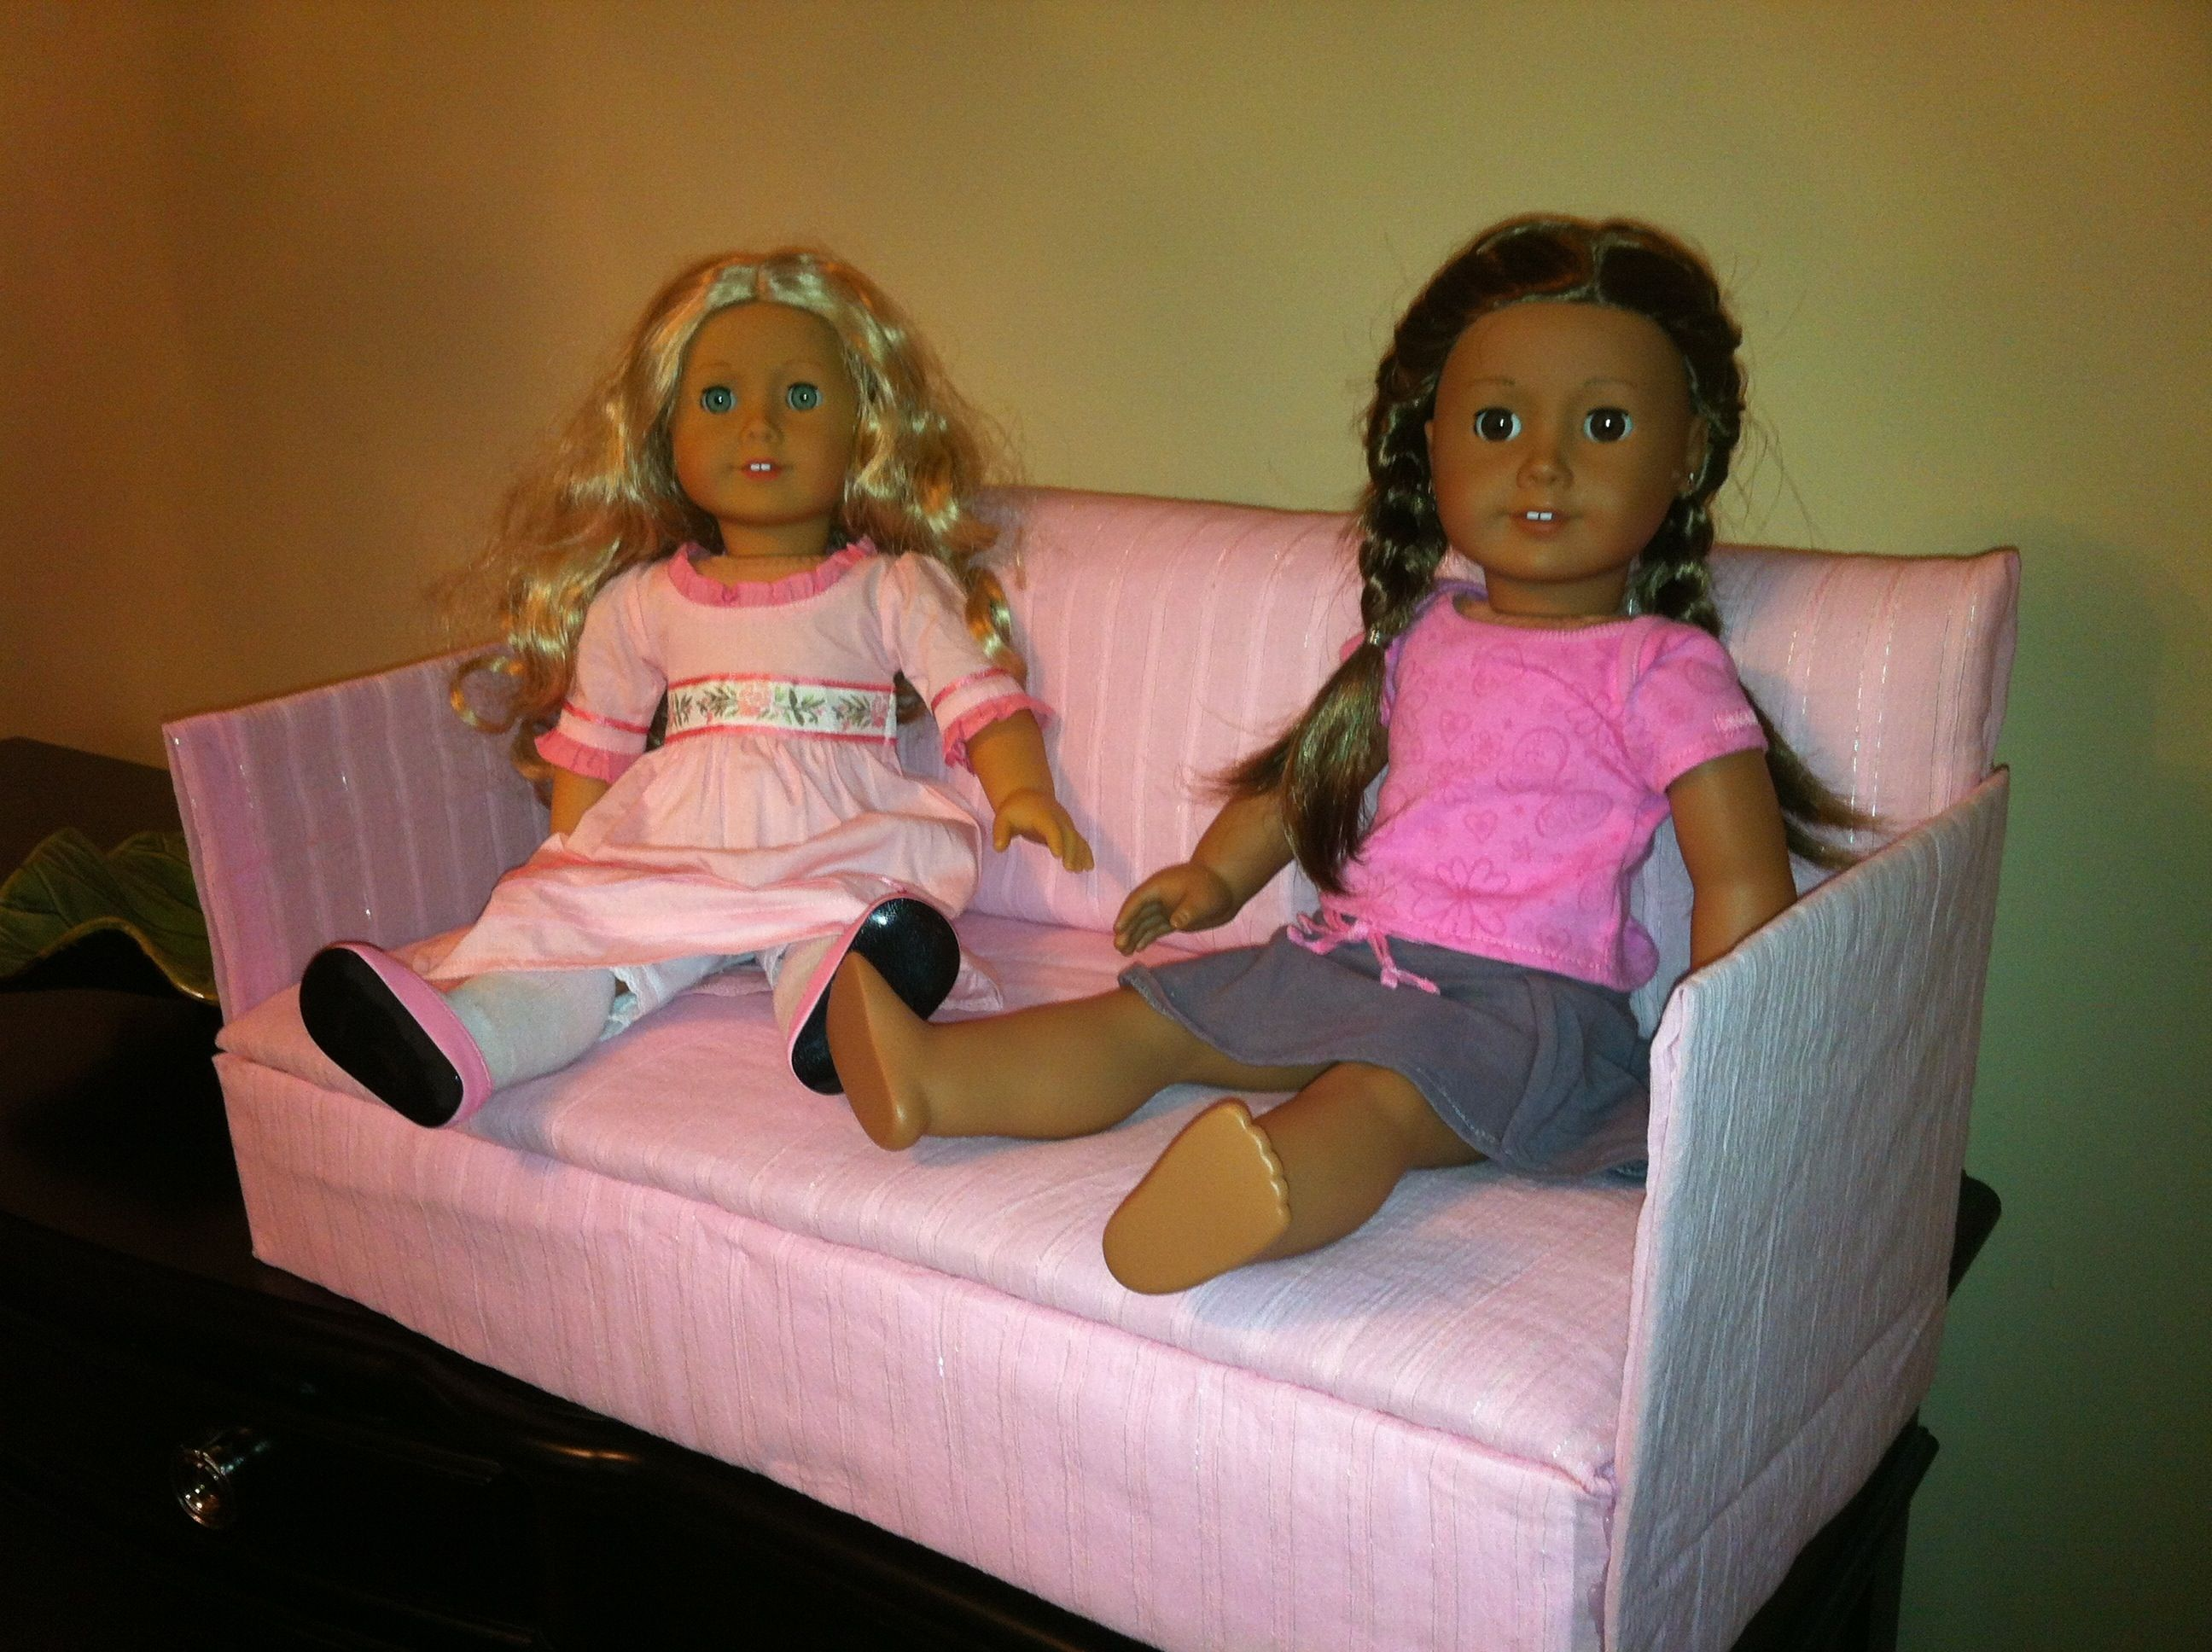 18 inch doll chair diy pilot ready room a sofa or couch for american girl dolls